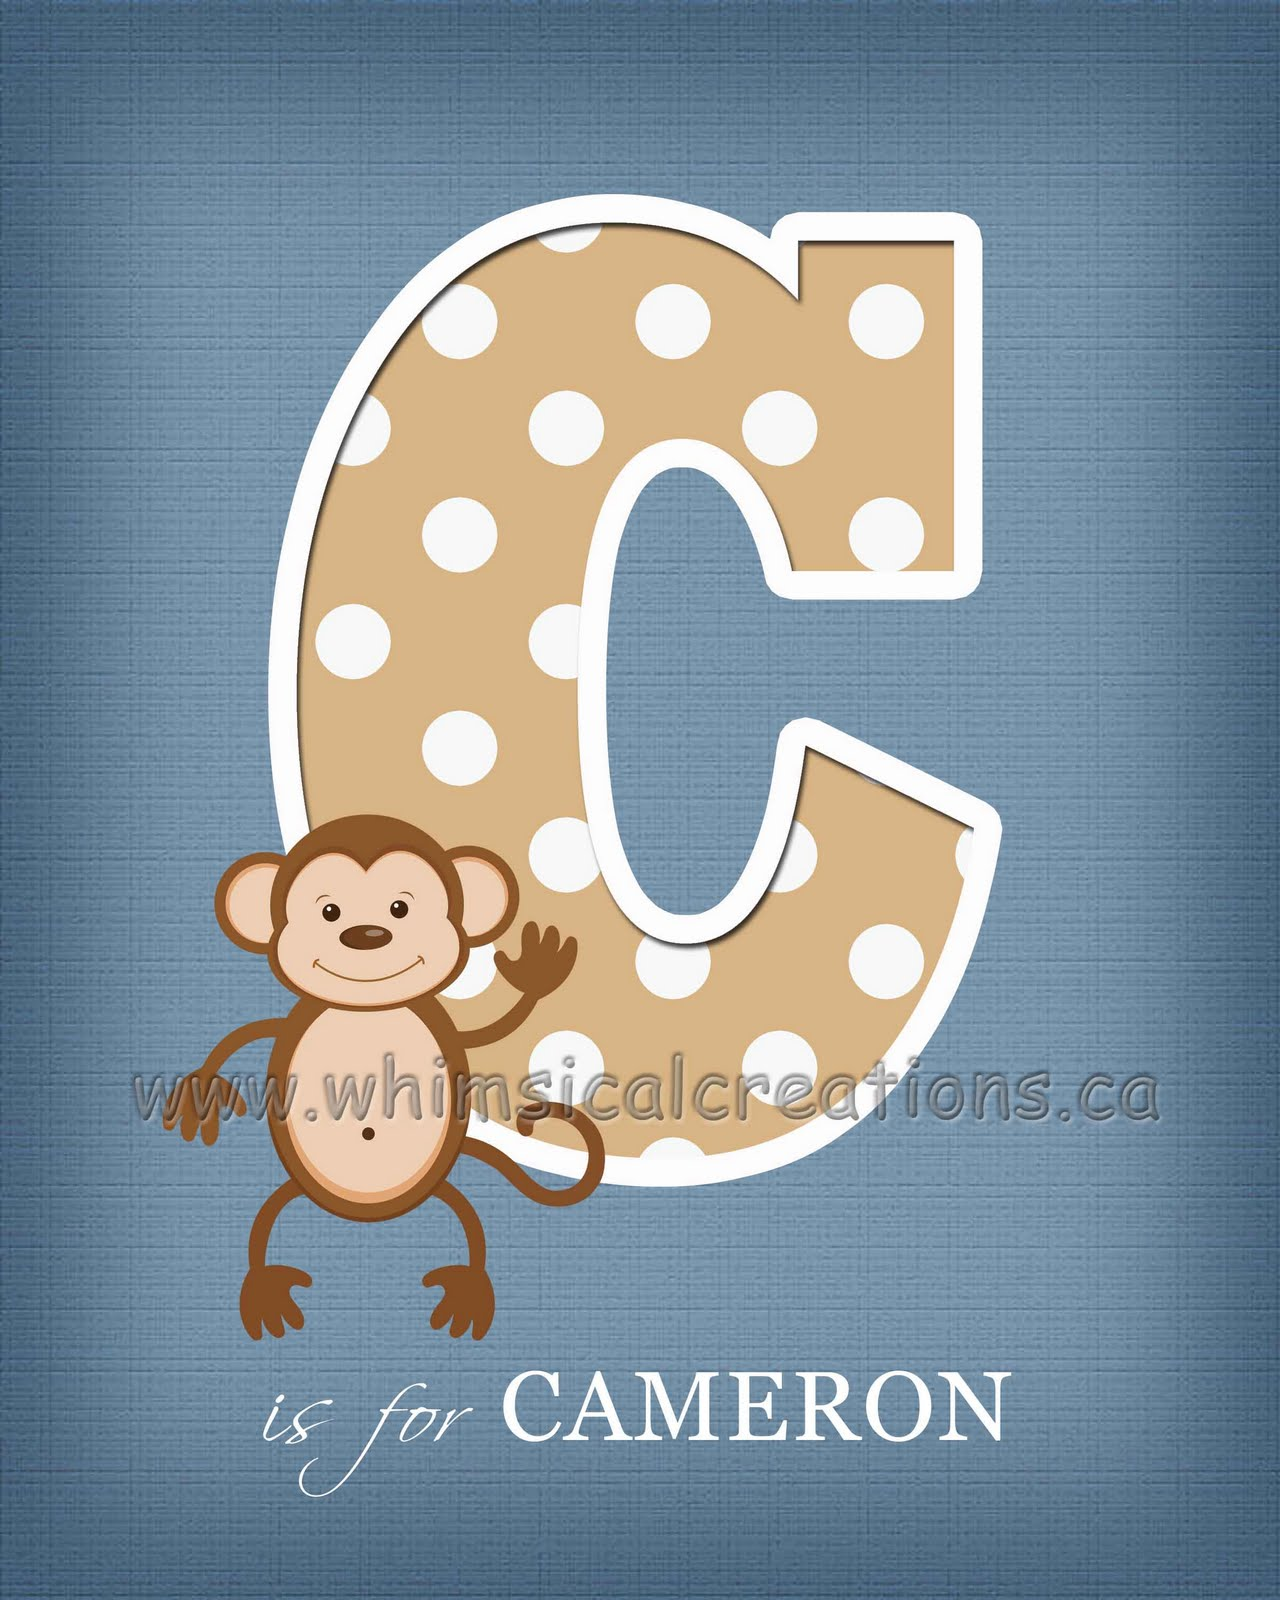 WhimsicalCreations.ca: Letter Wall Art / Letter Name Art For Nursery Or Kids  Bedroom